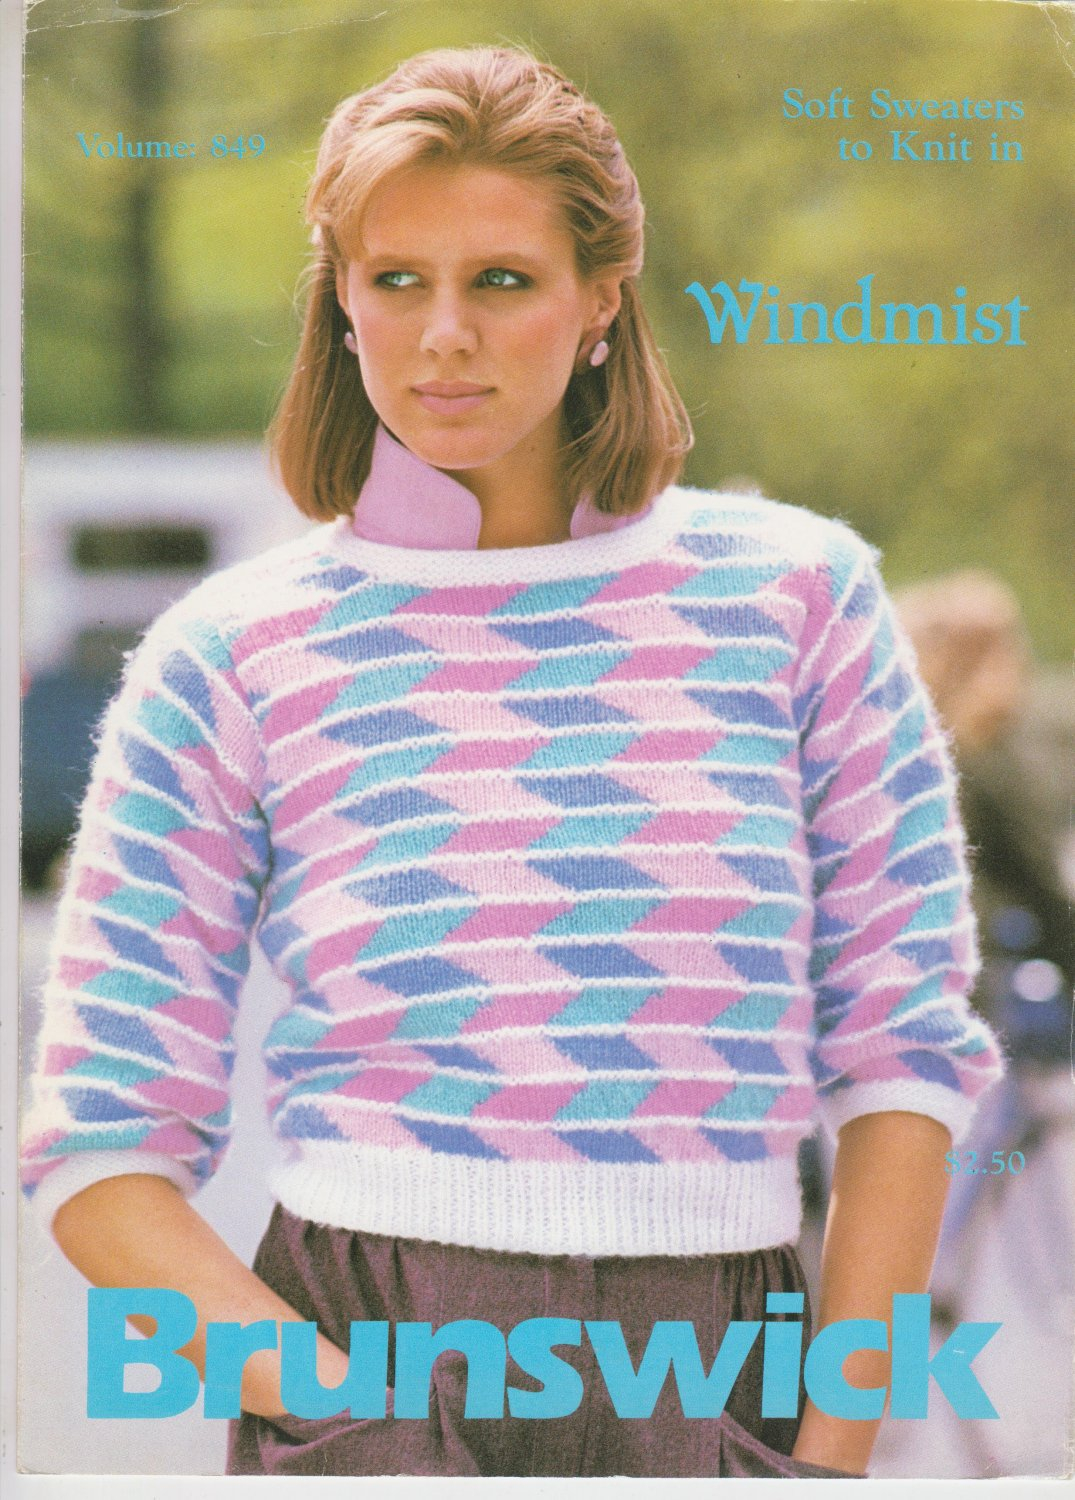 Knitted Pullover Sweater Patterns Brunswick 1983 Knitting Pattern Leaflet Volume 849 To Knit Pullover